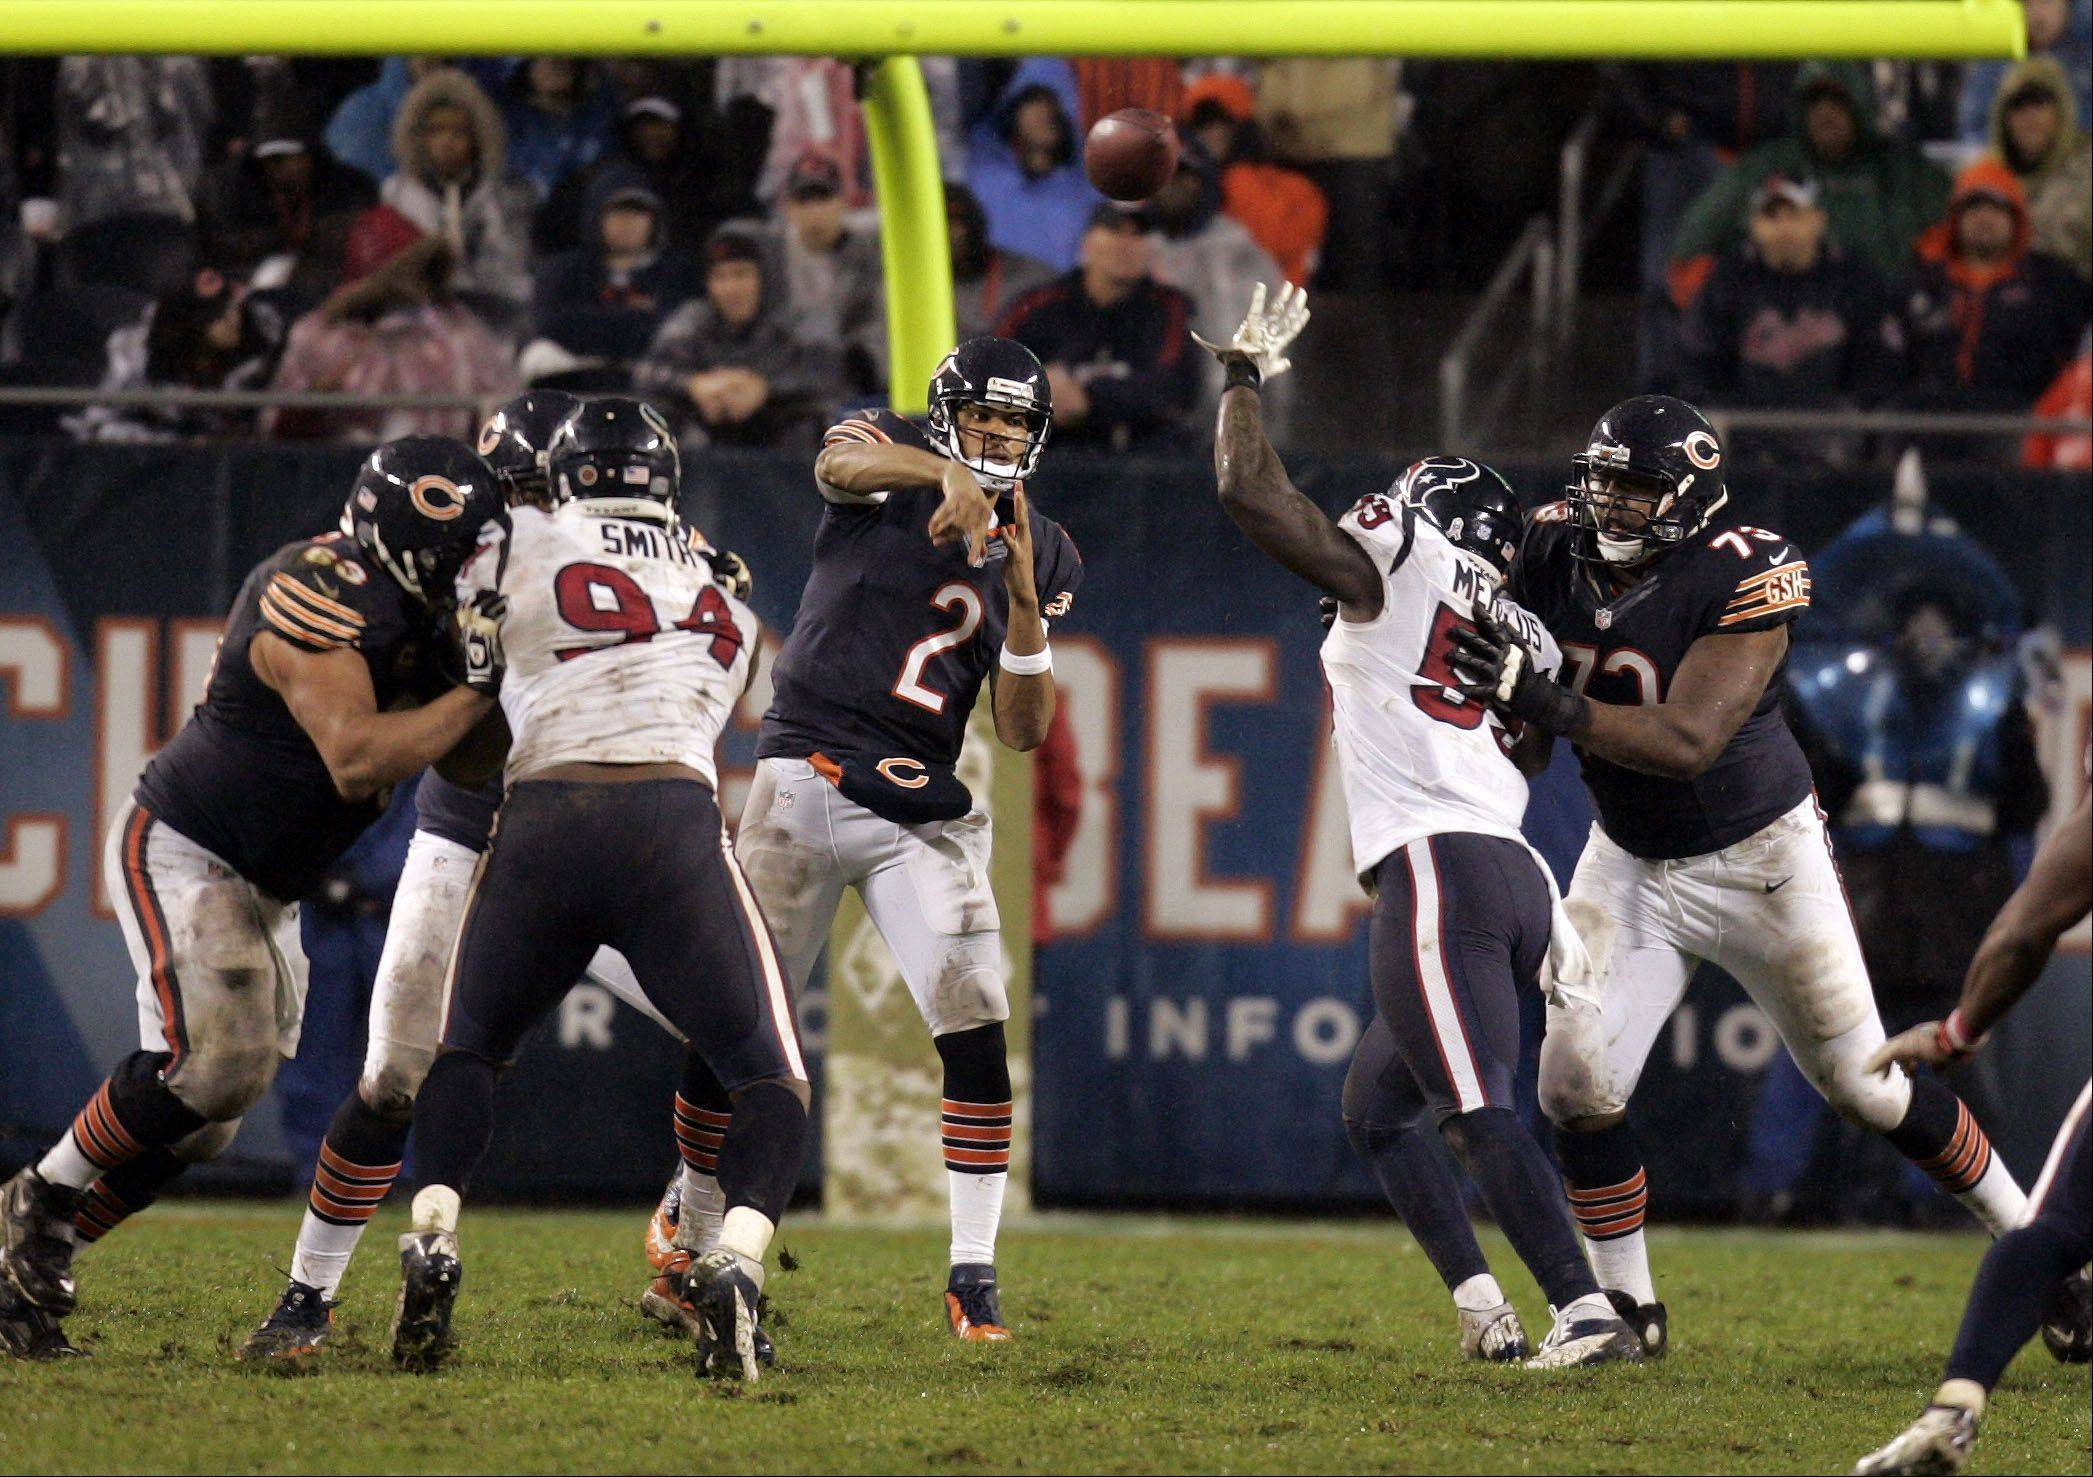 Chicago Bears quarterback Jason Campbell (2) throws during the fourth quarter during the game.